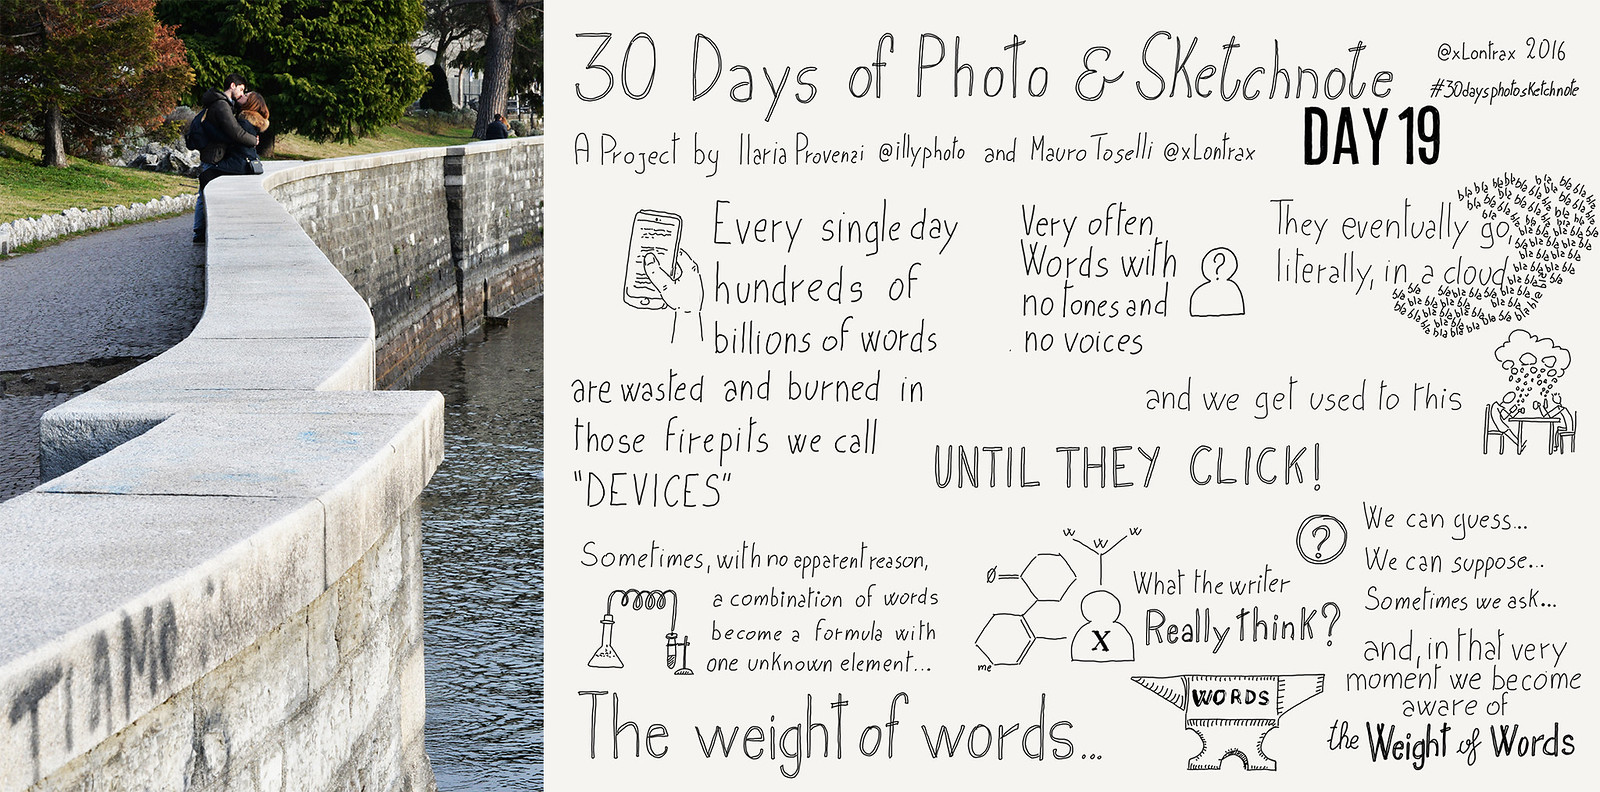 Day 19. Il peso delle parole - The weight of words